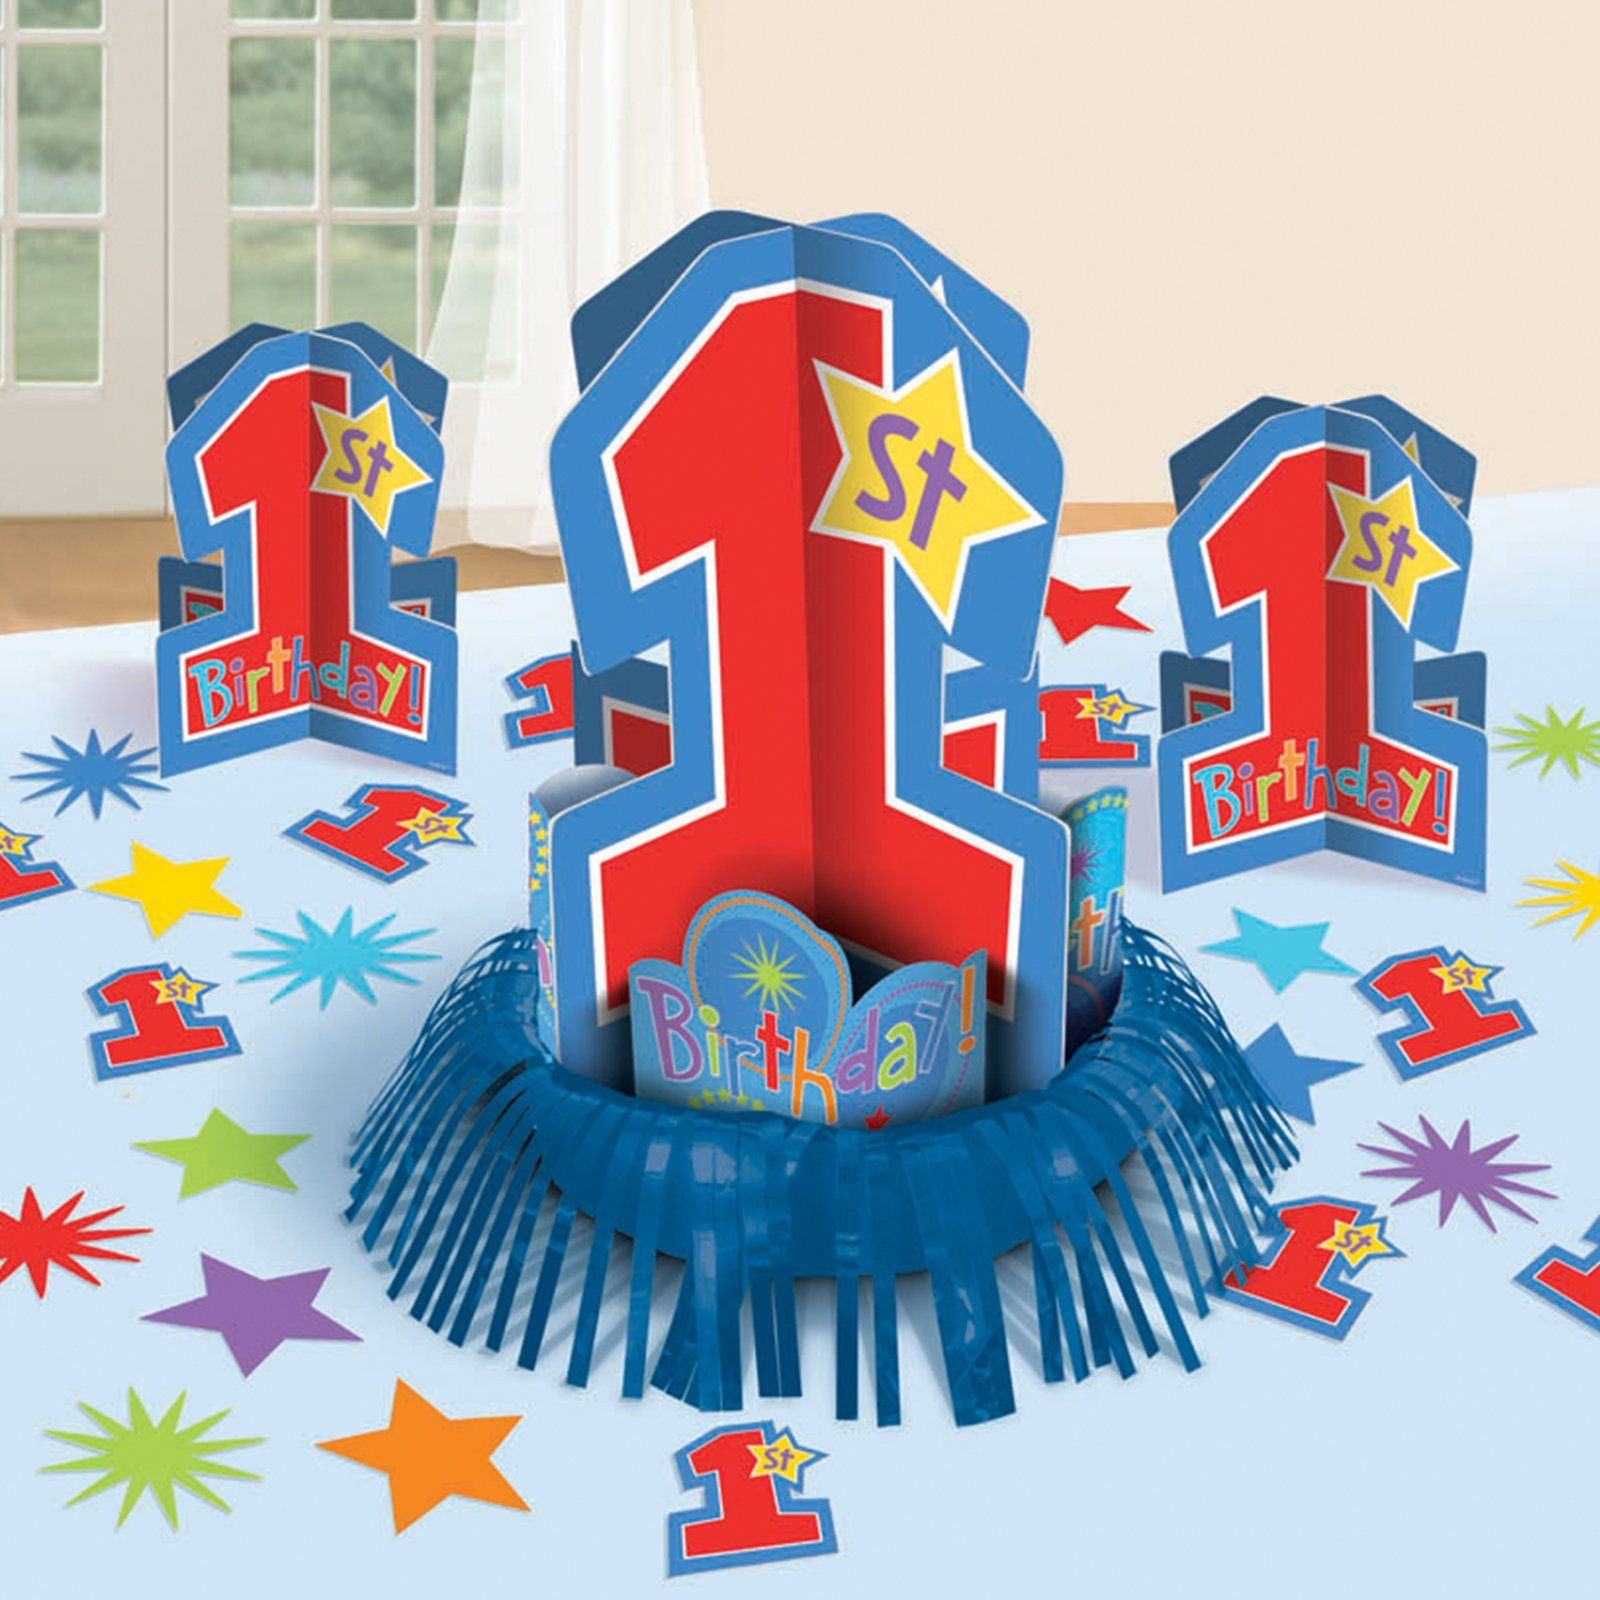 Birthday table decorations boy - One Derful Birthday Boy Table Decorating Kit